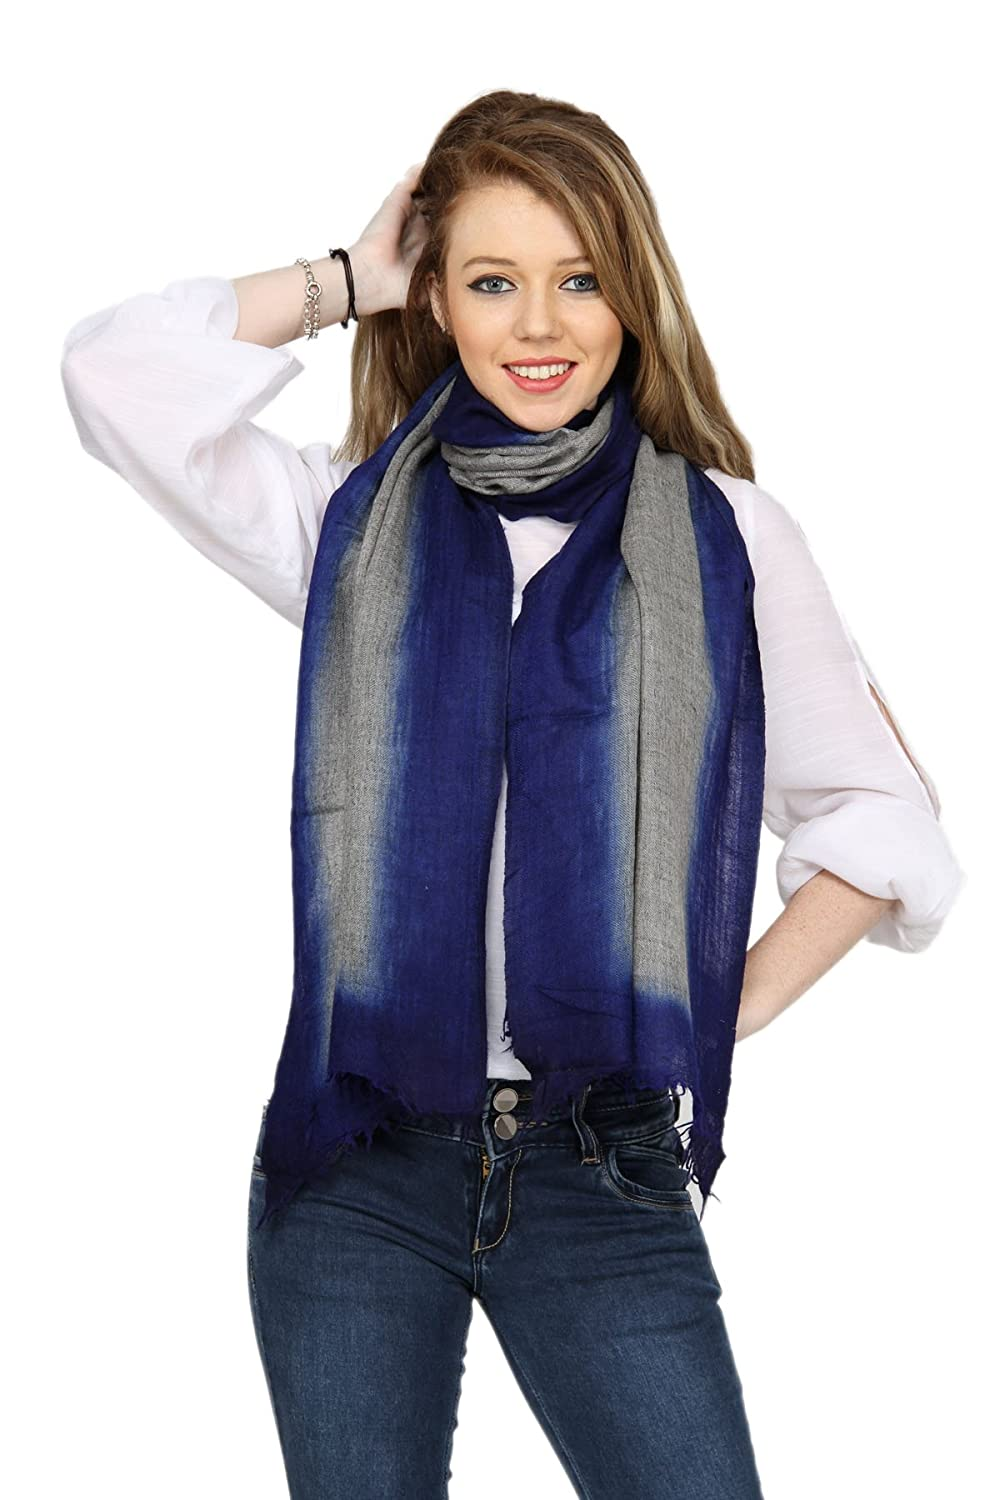 The Scarf Hut Women's Accessories Grey Dyed Fine Wool Scarf.